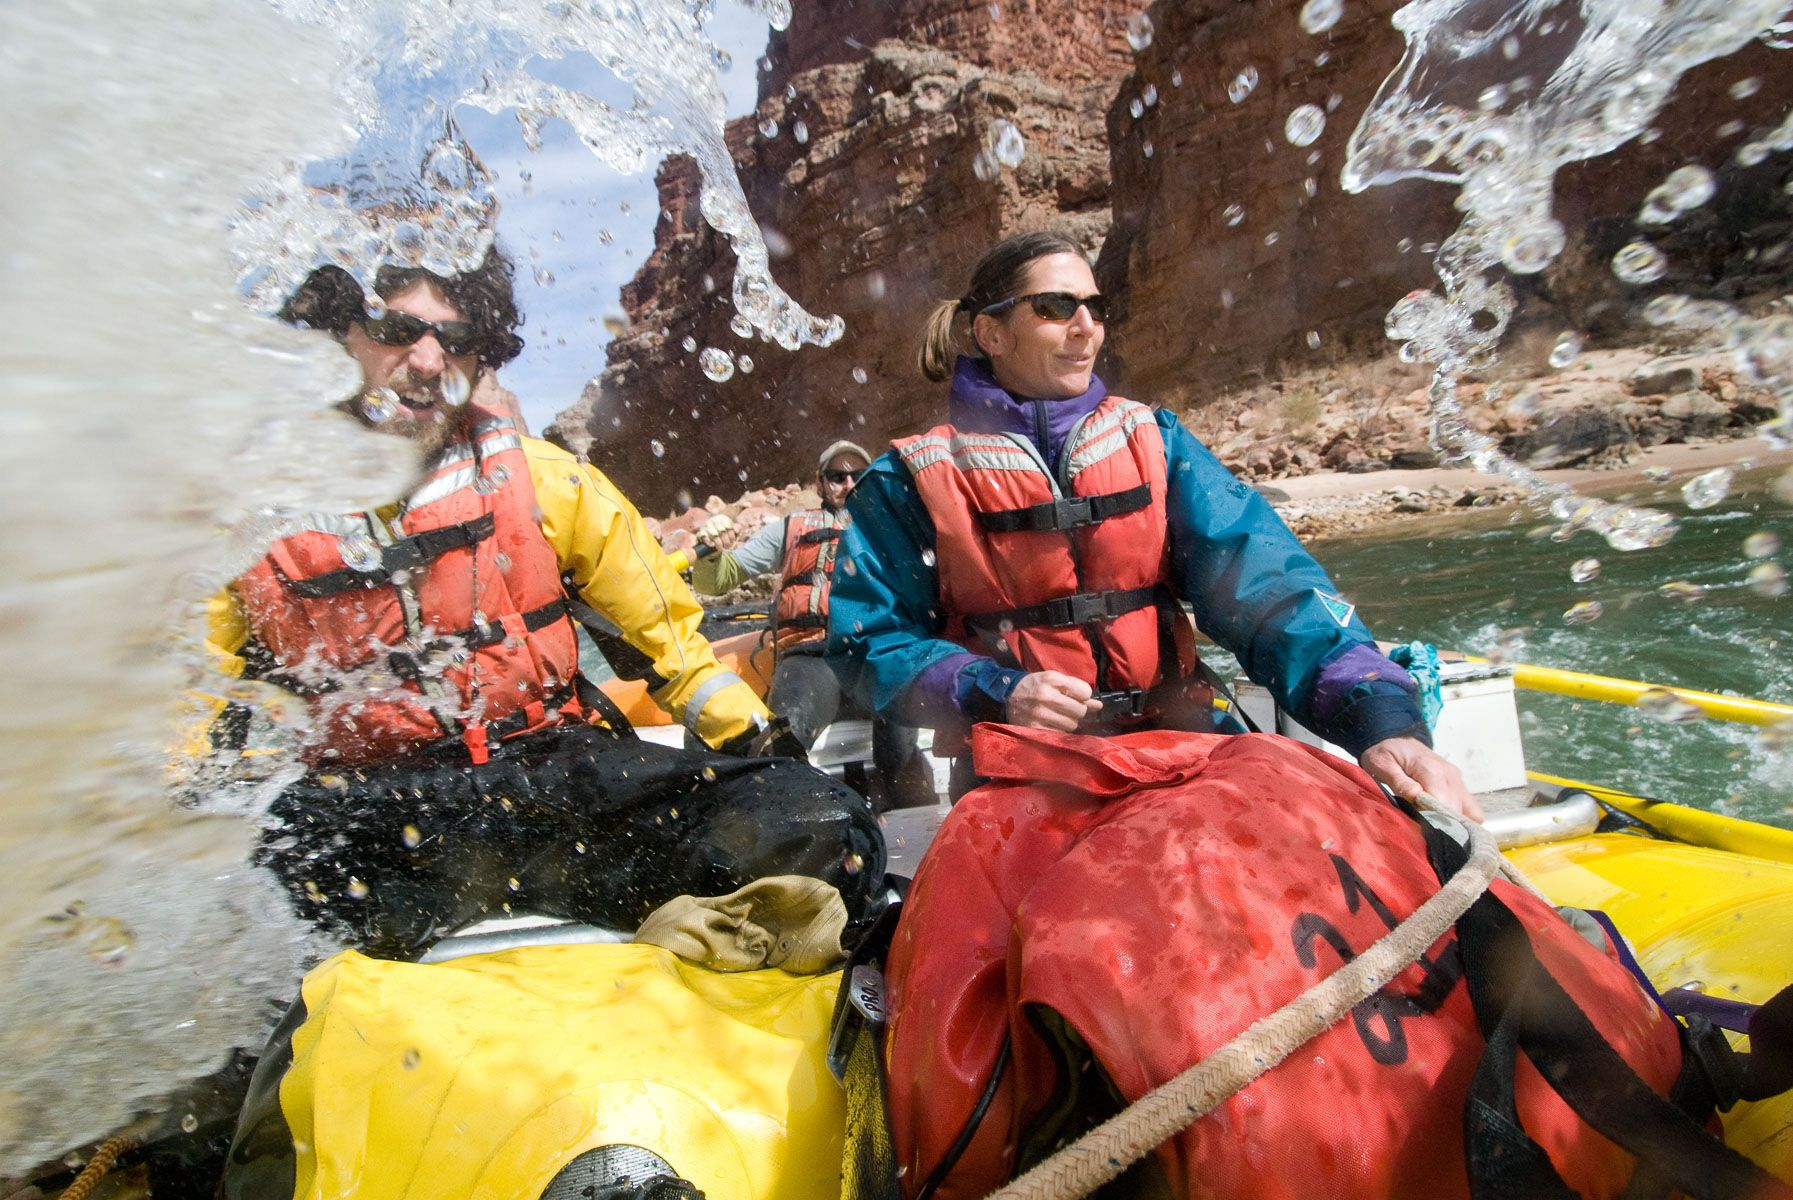 Rafters About to Get a Face Full of Water on the Colorado River